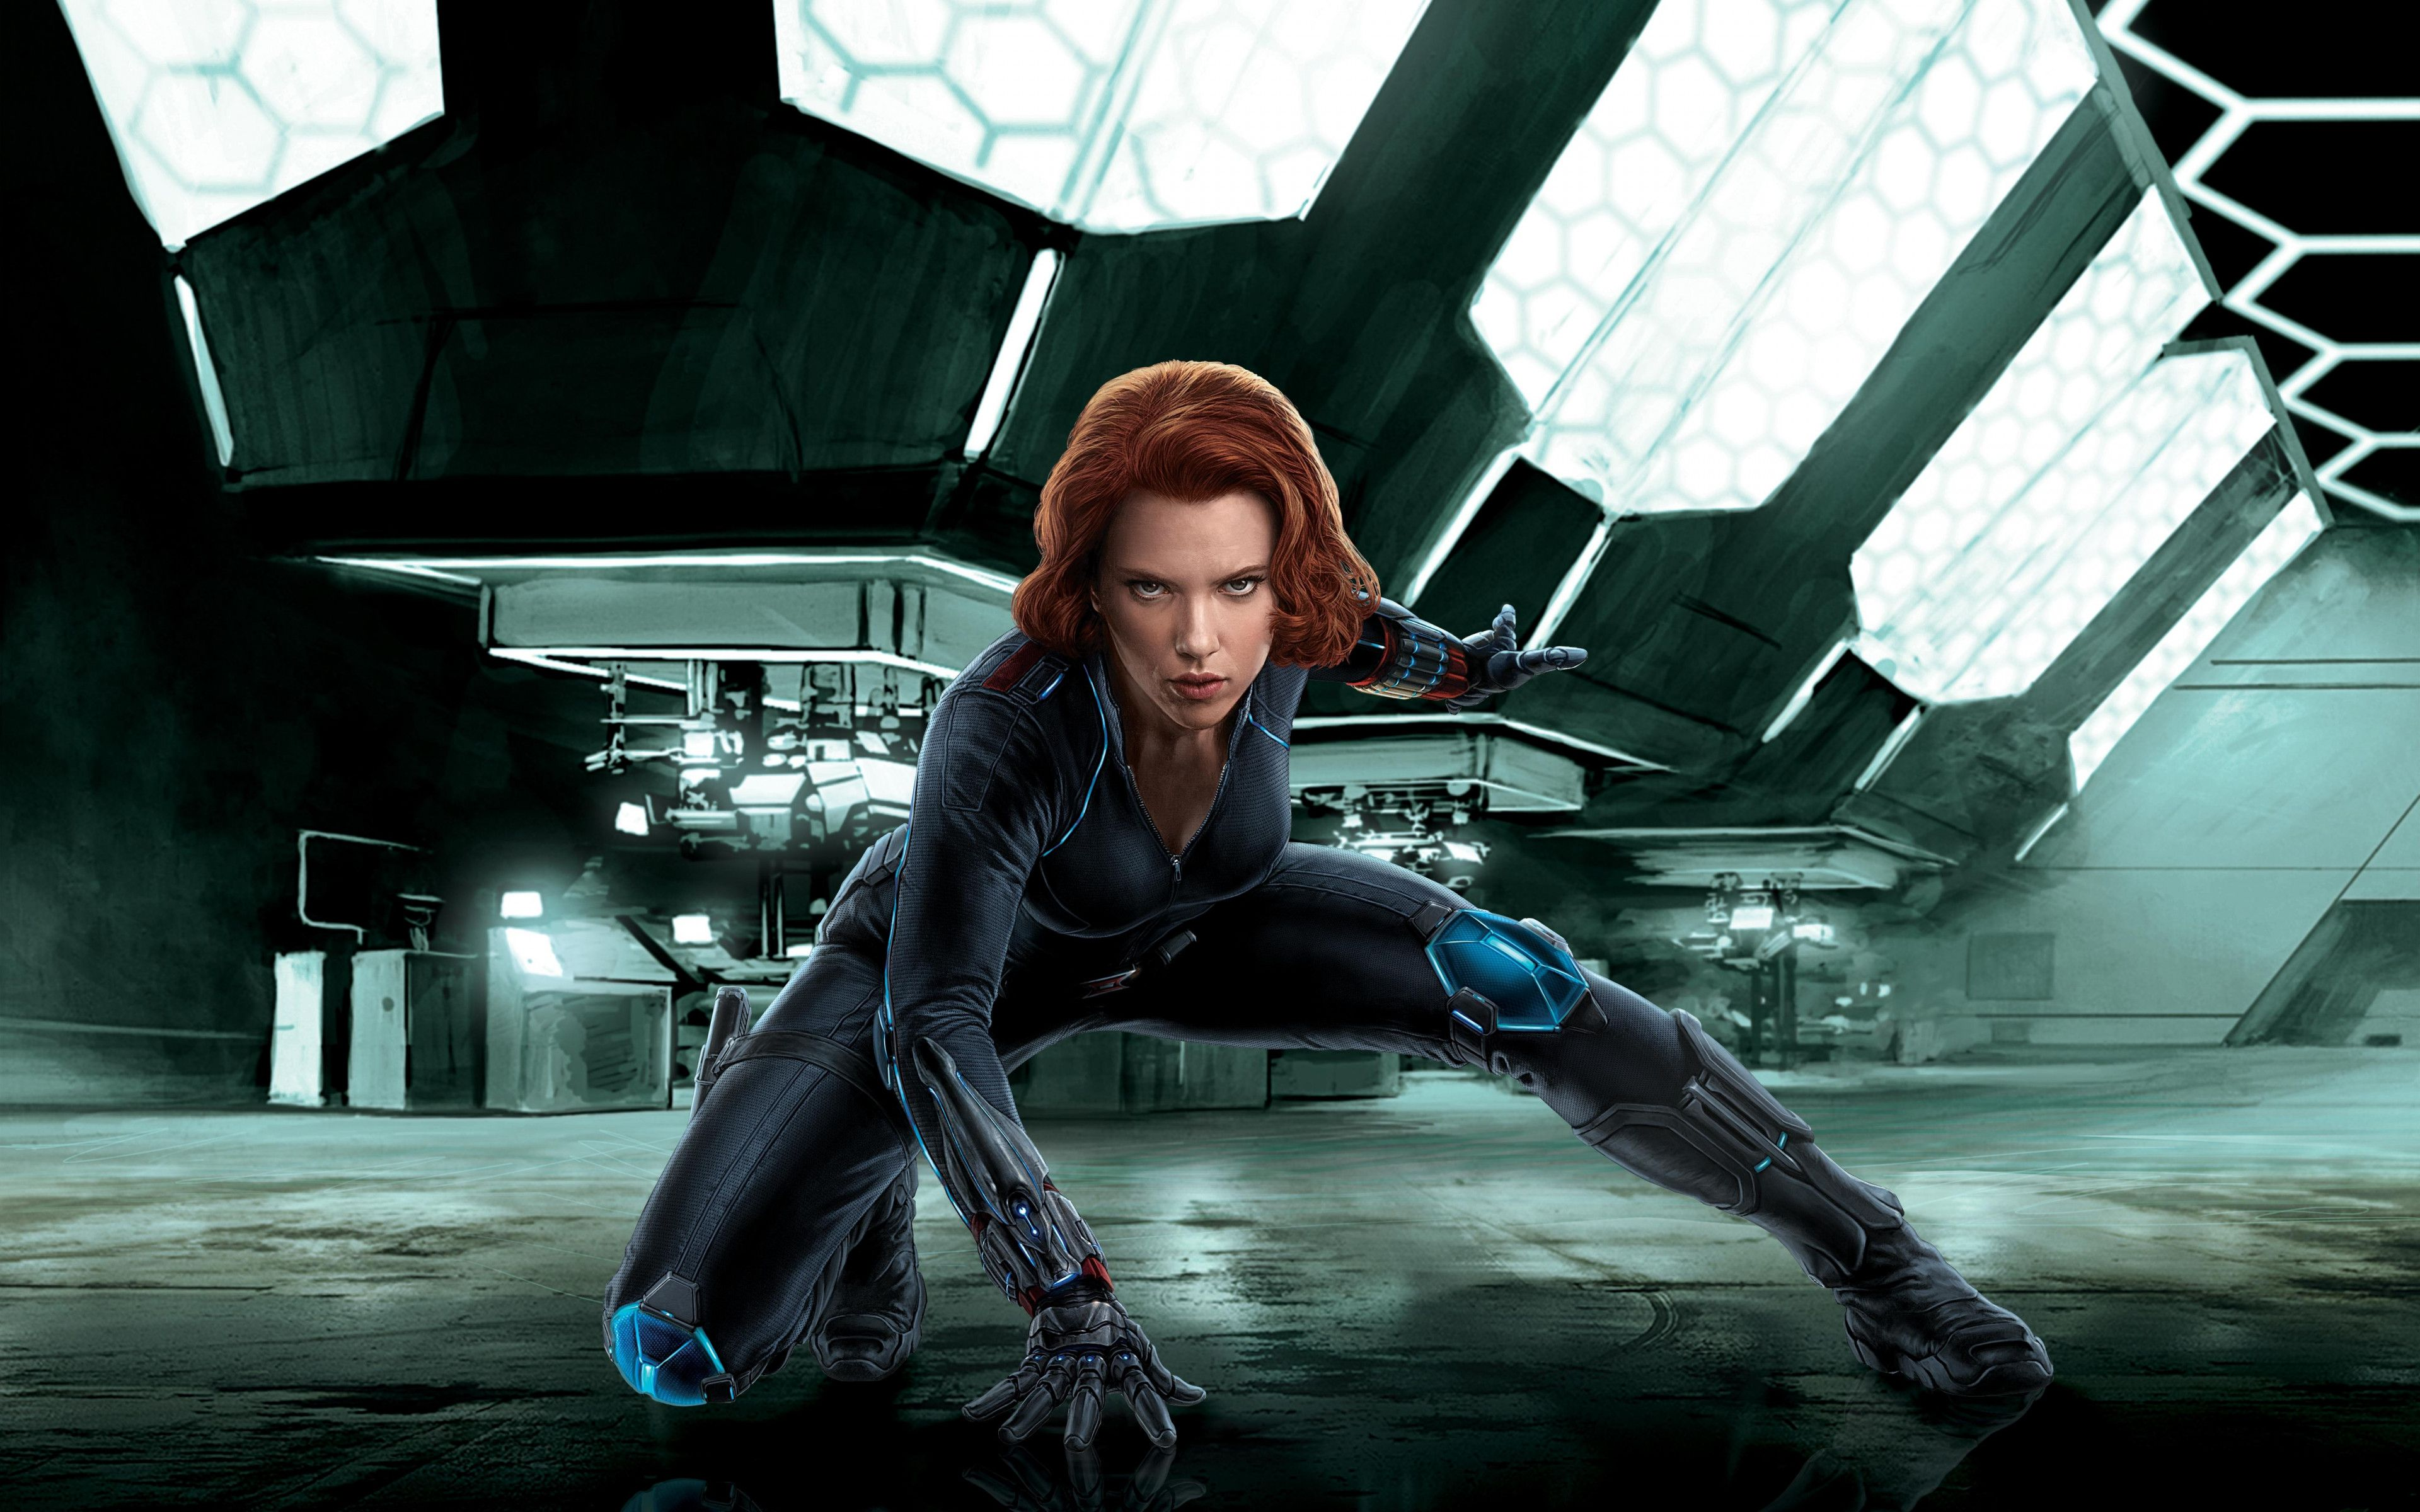 black widow marvel super hero avengers hd background wallpaper